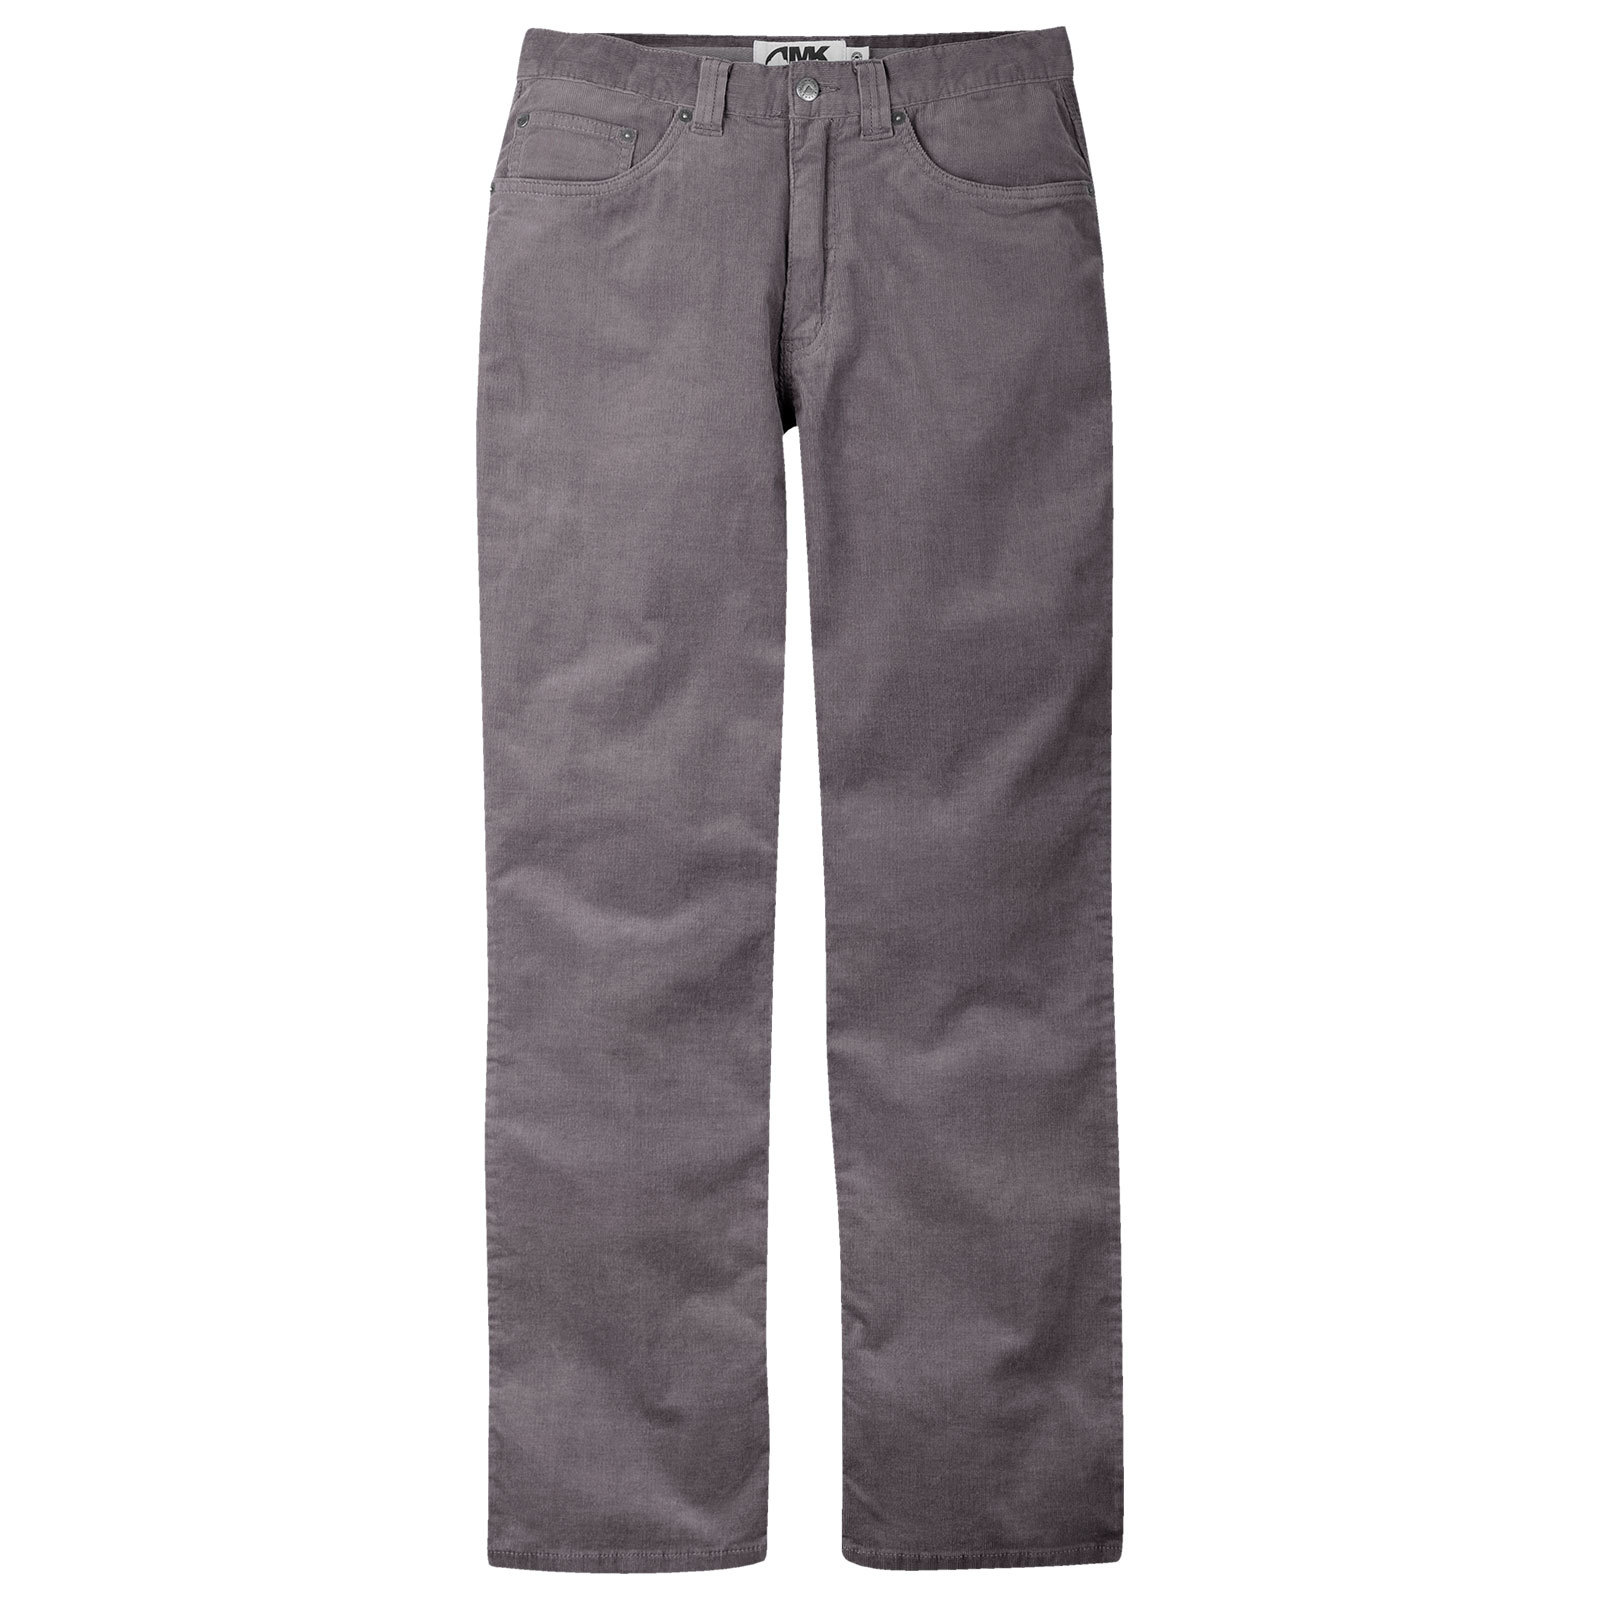 Mountain Khakis | Men's Canyon Cord Pant Classic Fit - Mountain Khakis